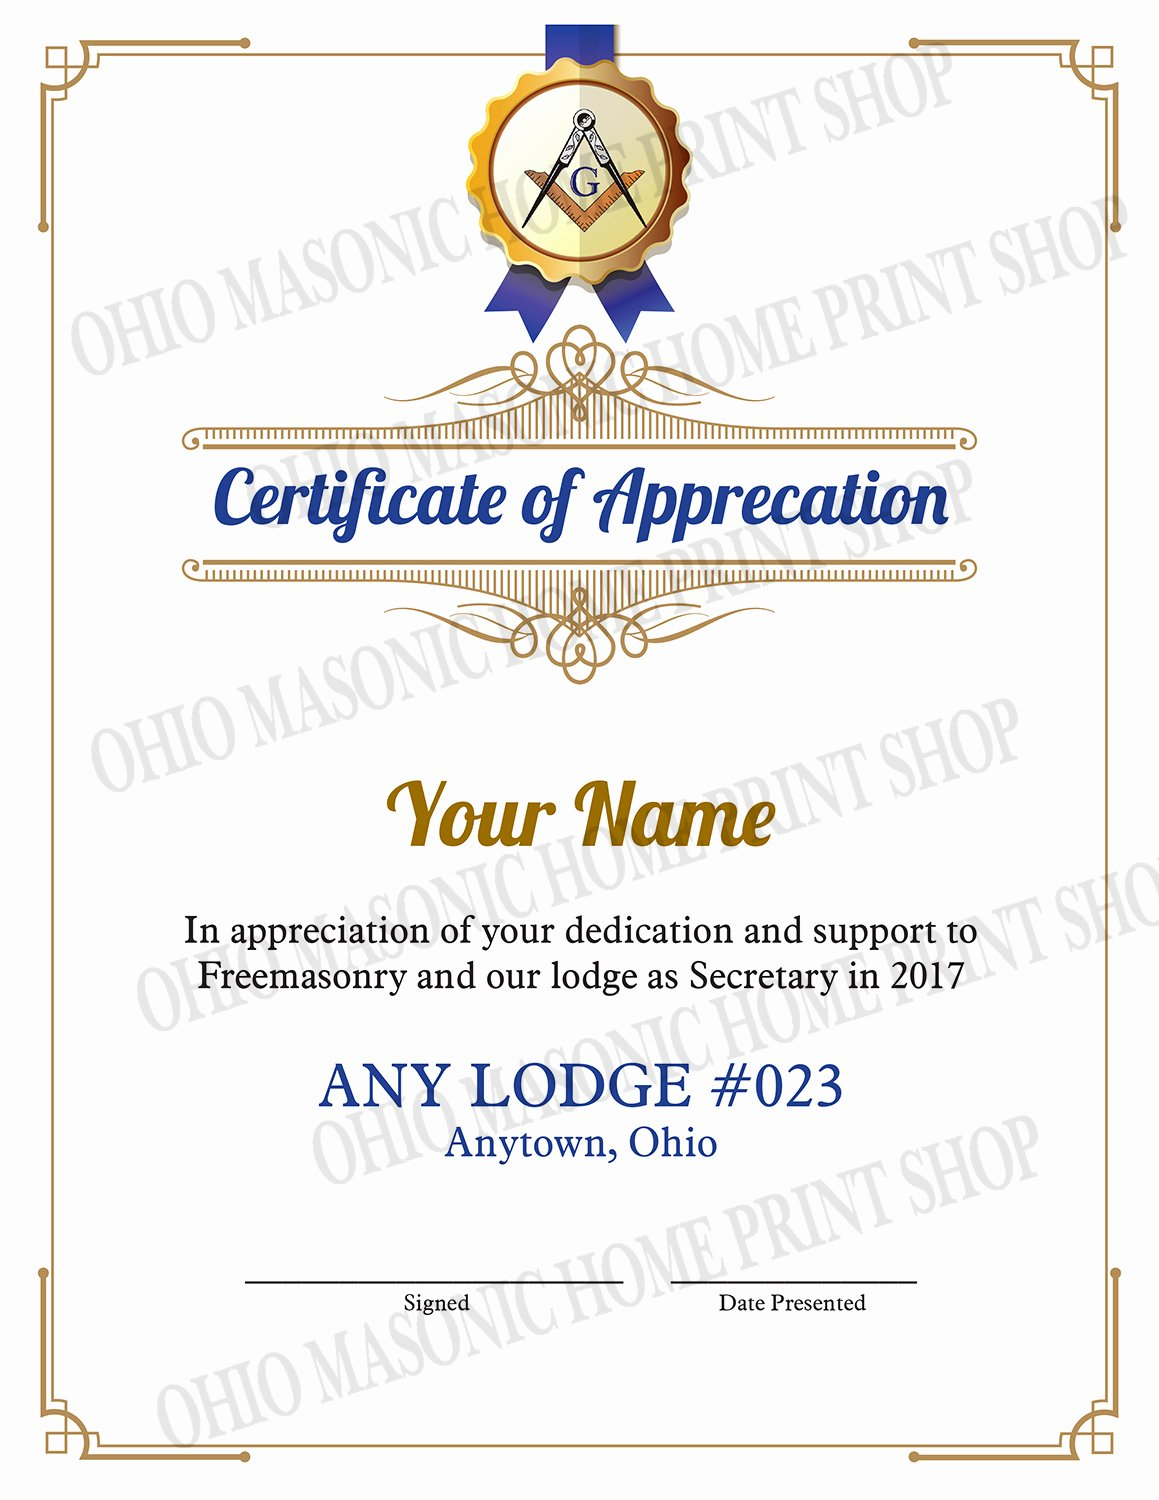 Masonic Certificate Of Appreciation Template Lovely Occasion Certificate the Ohio Masonic Home Printshop